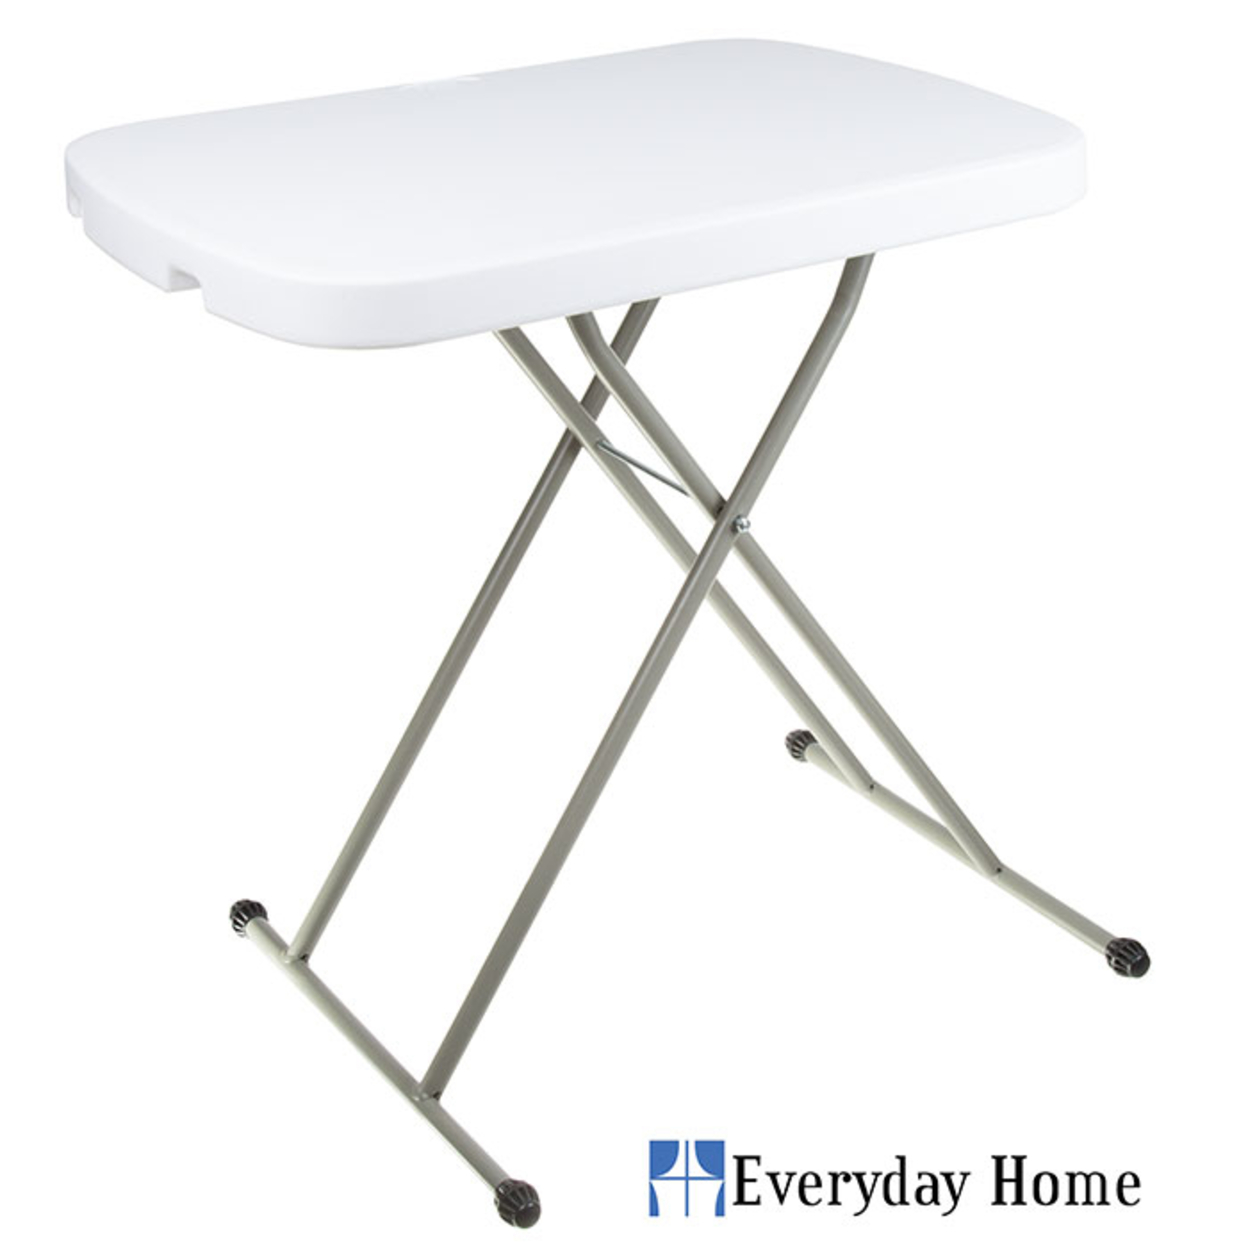 home decor tables the best prices for home and garden everyday home folding table 26 x 18 x 28